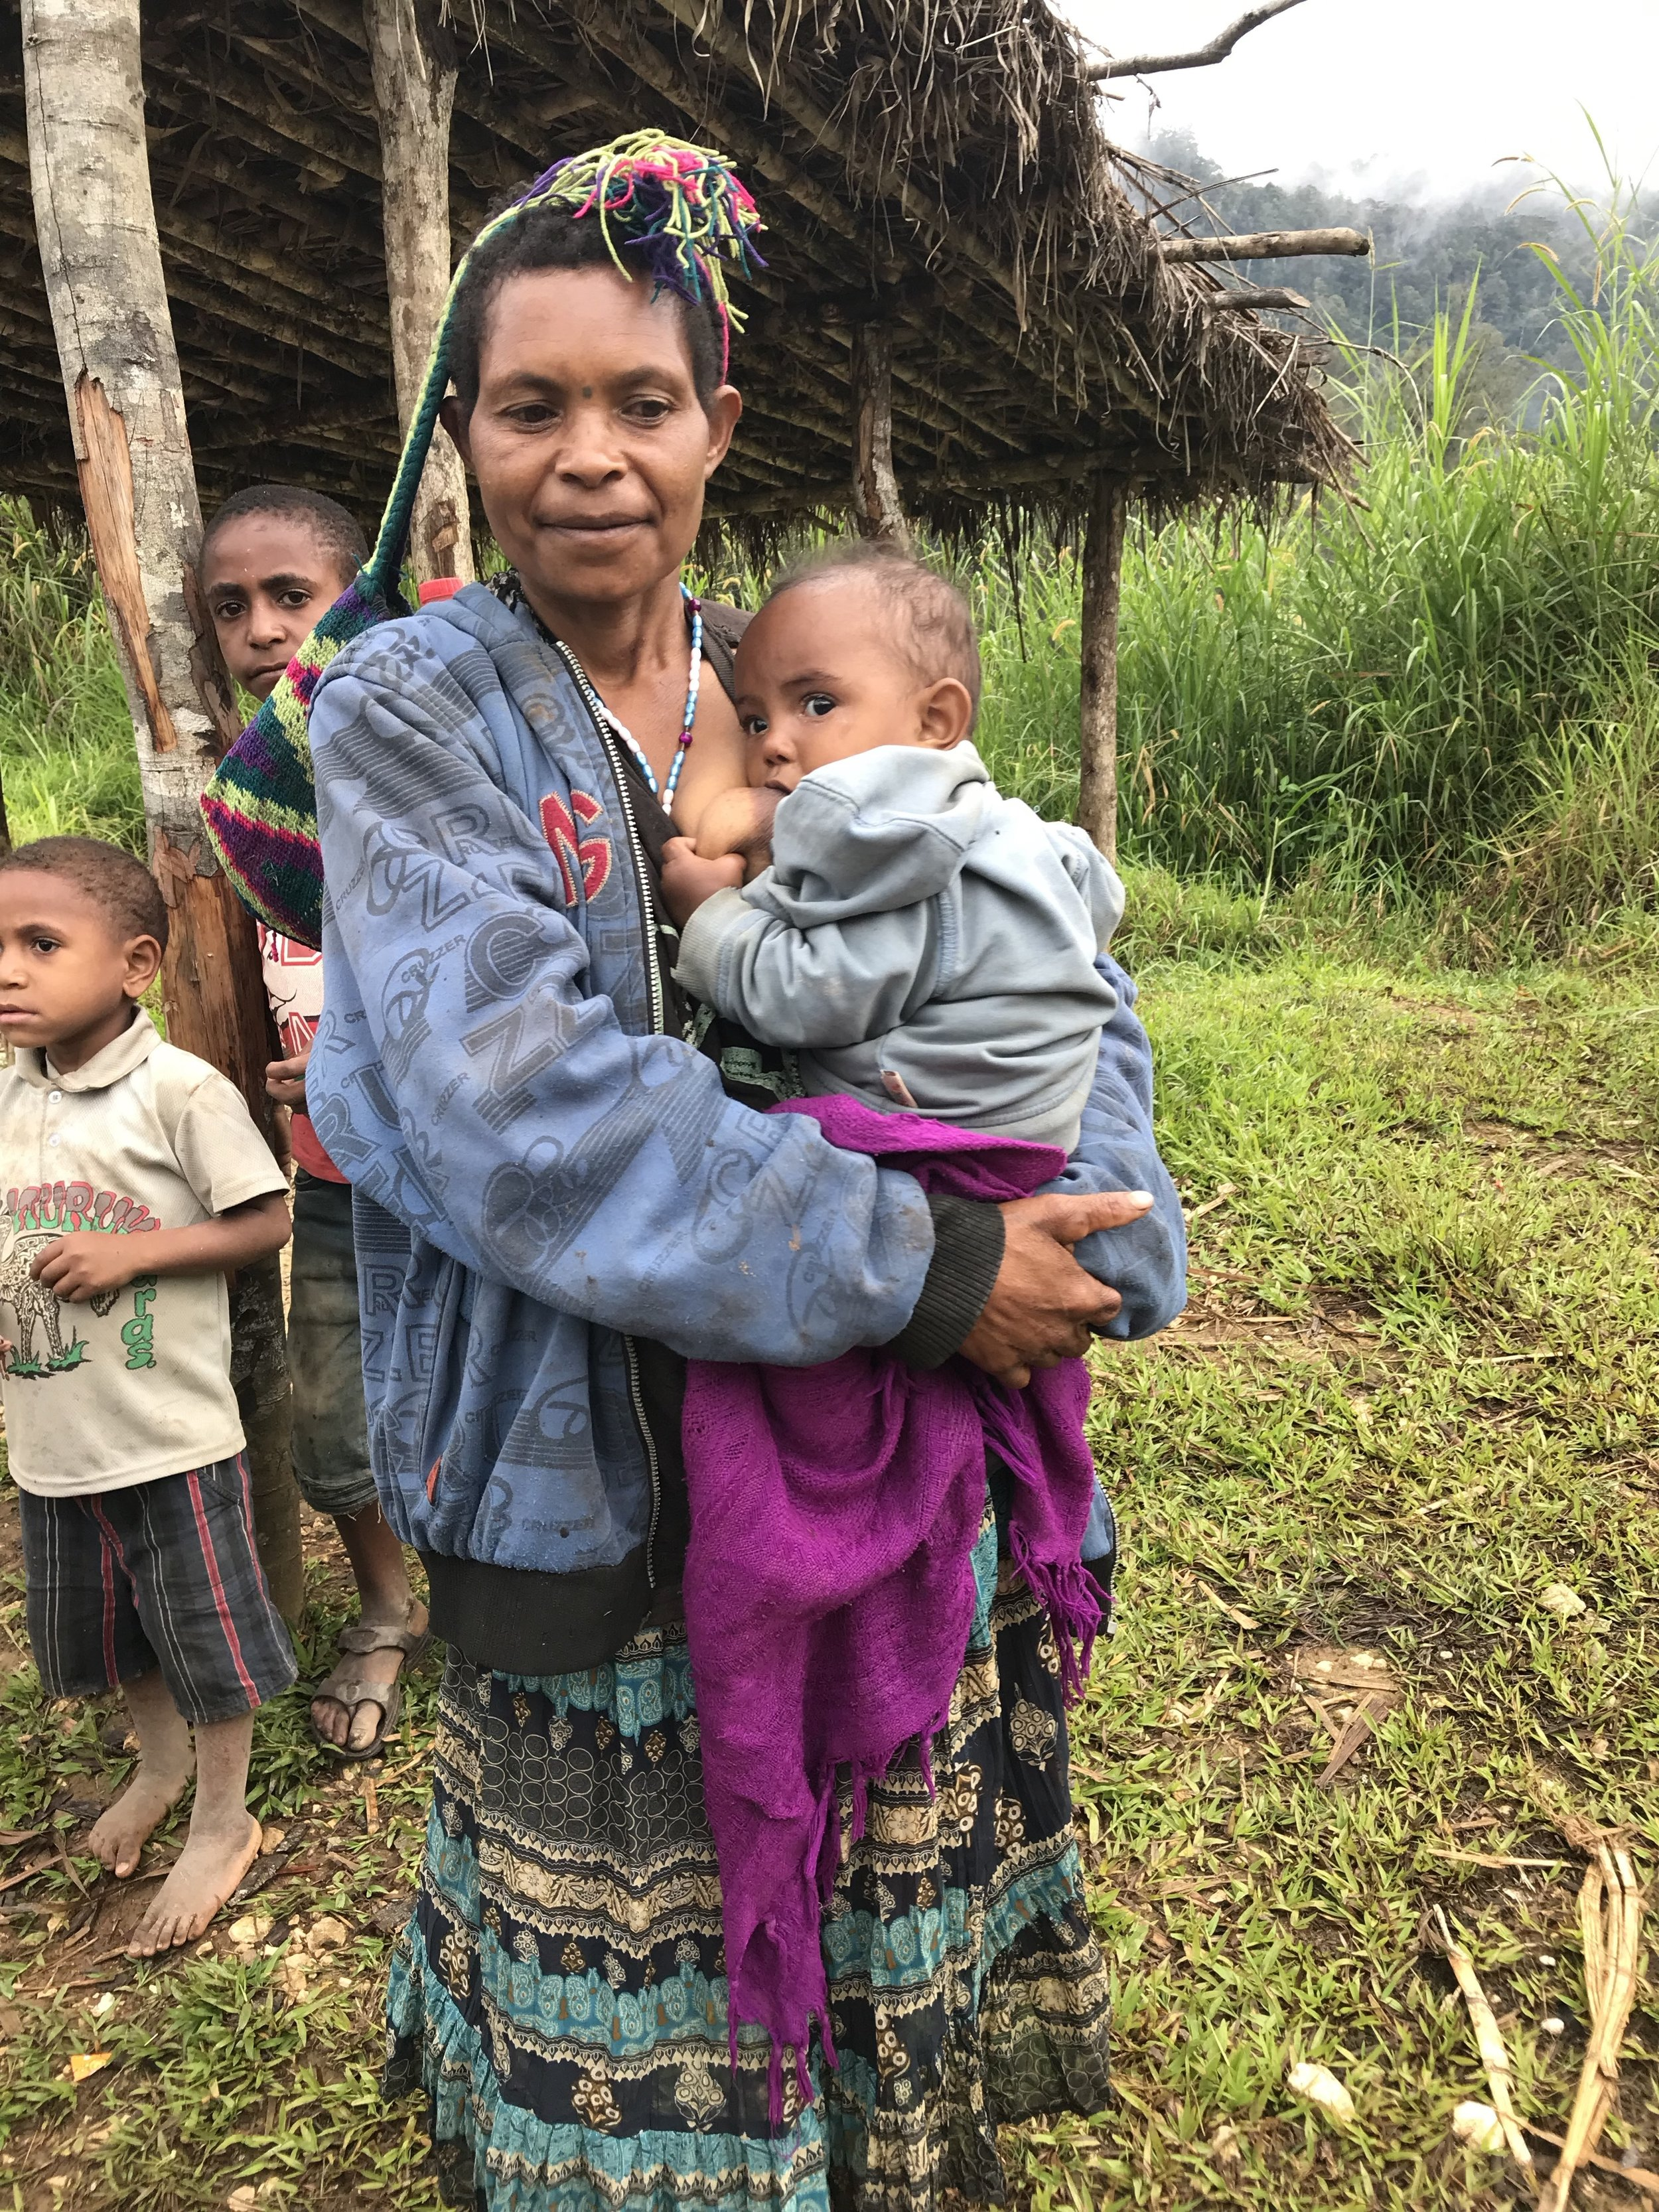 Women bear a disproportionate share of the violence in Papua New Guinea